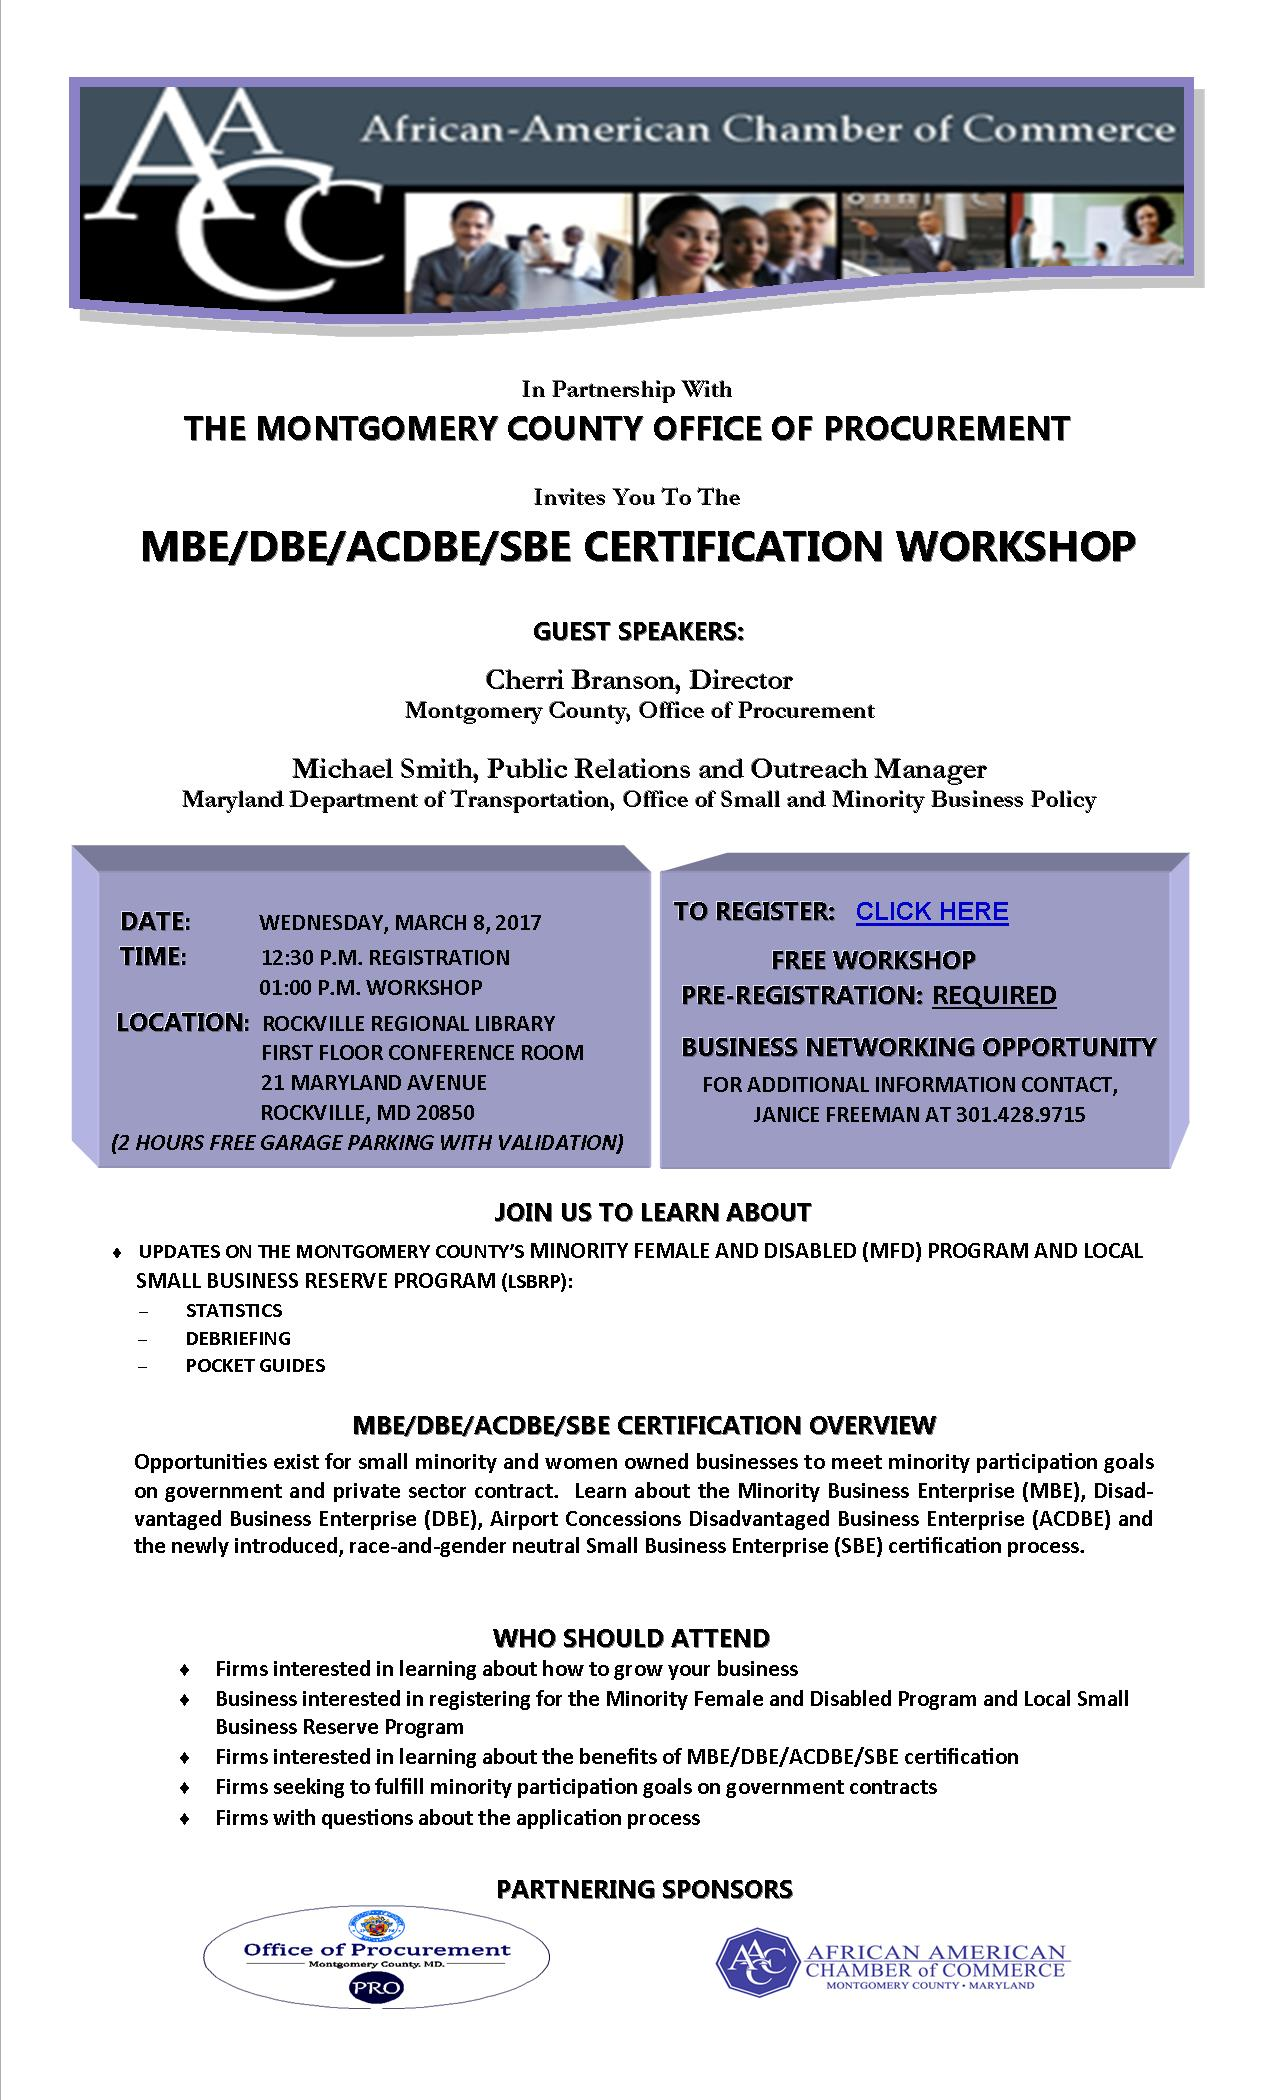 Mbedbeacdbesbe certification workshop wednesday march 8 mbedbeacdbesbe certification workshop xflitez Choice Image